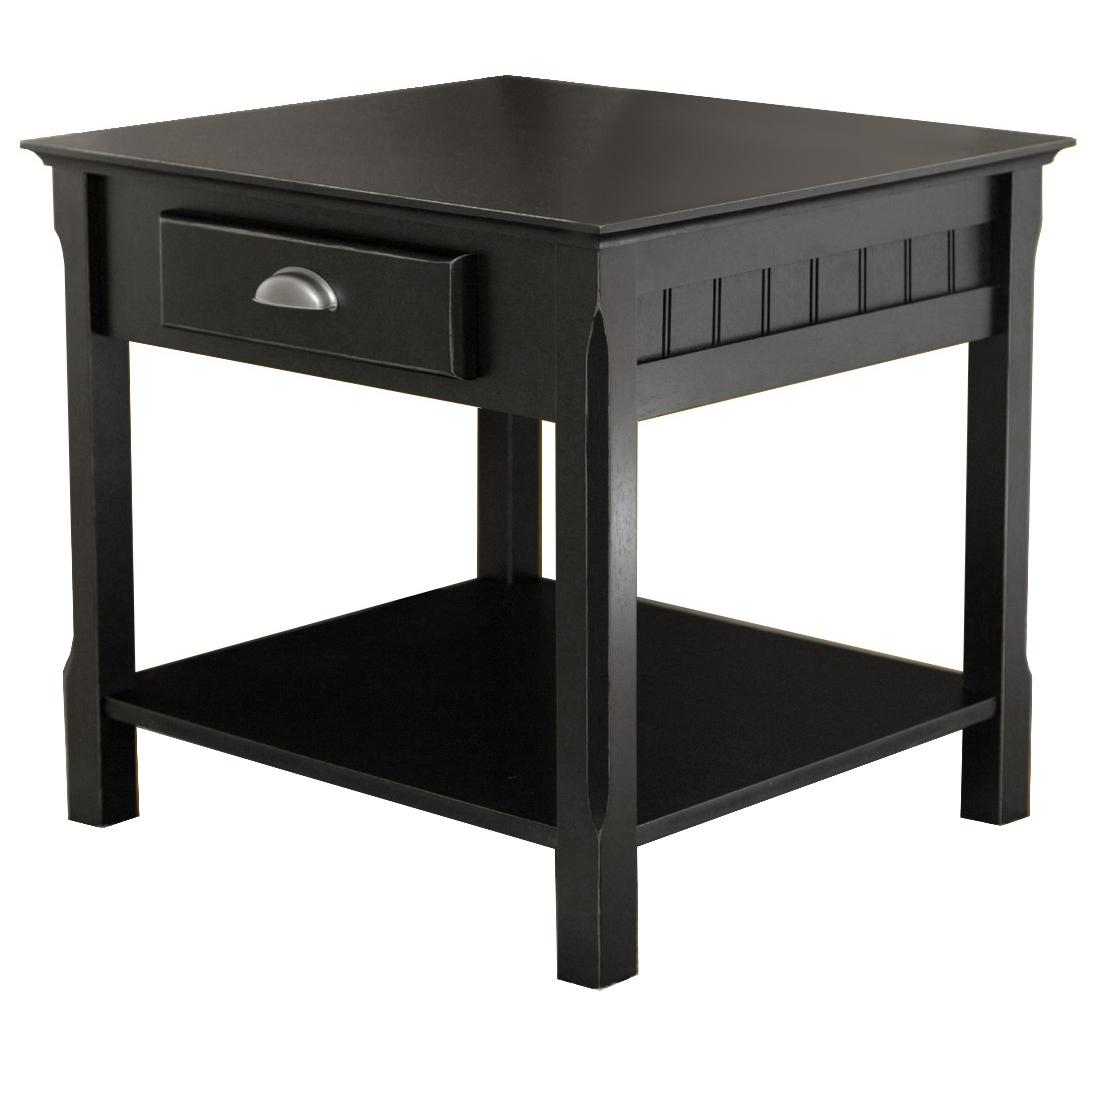 uttermost furniture the fantastic awesome skinny end table with winsome wood drawer and shelf black view larger ikea malm floating nightstand grey coffee white lacquer tables made